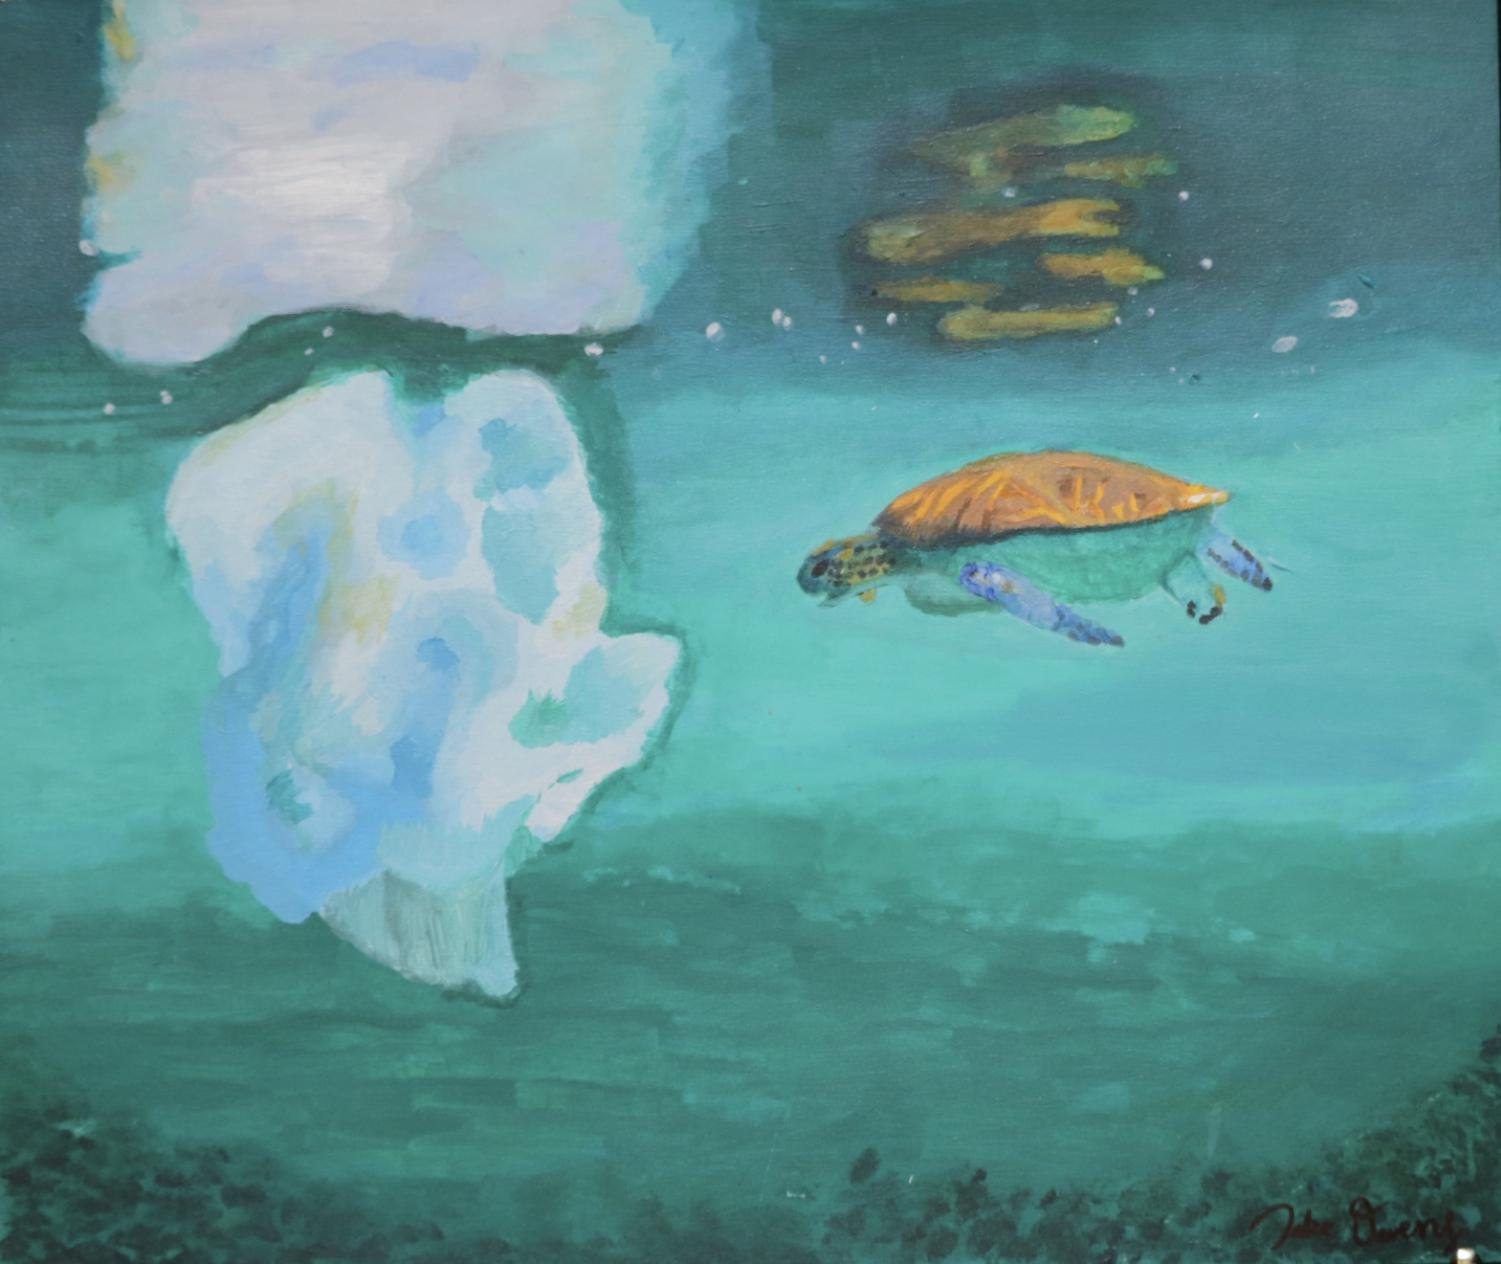 Sophomore+Jake+Owens+created+this+piece+of+a+lone+turtle+floating+in+the+sea+to+show+his+strong+feelings+against+pollution+in+the+oceans+and+the+negative+effects+it+is+having+on+sea+life.